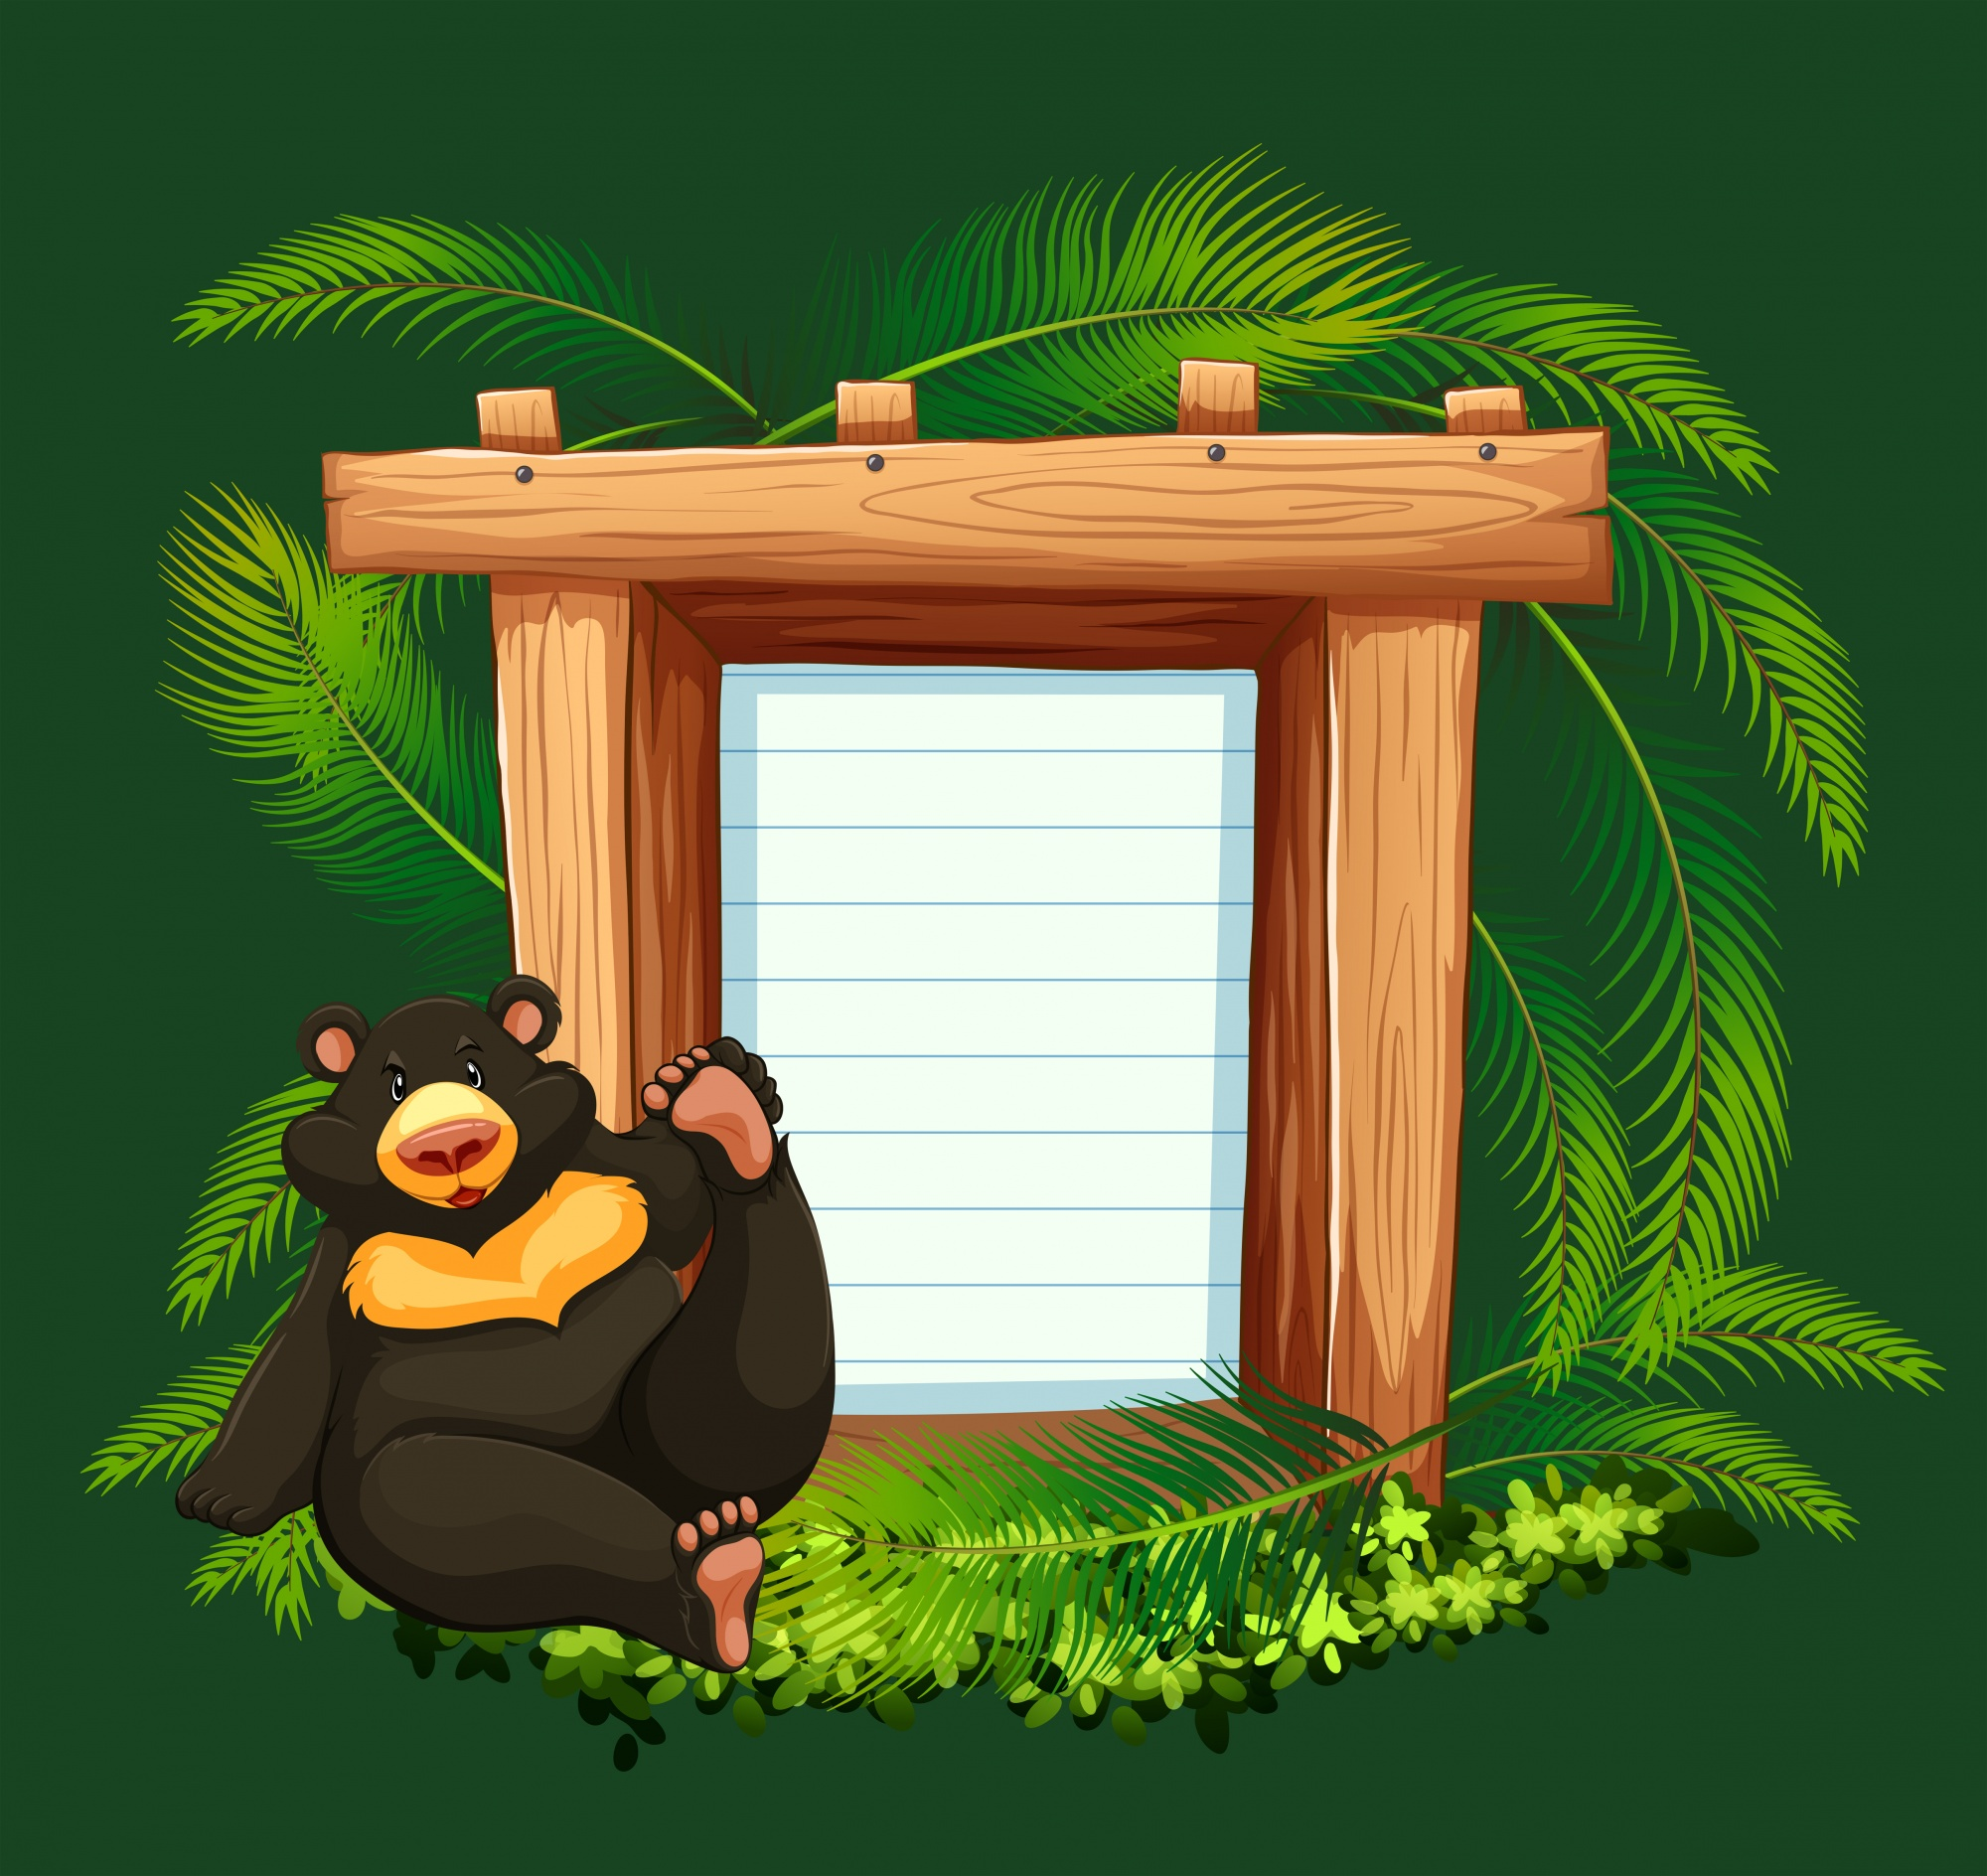 Paper template with bear in forest background